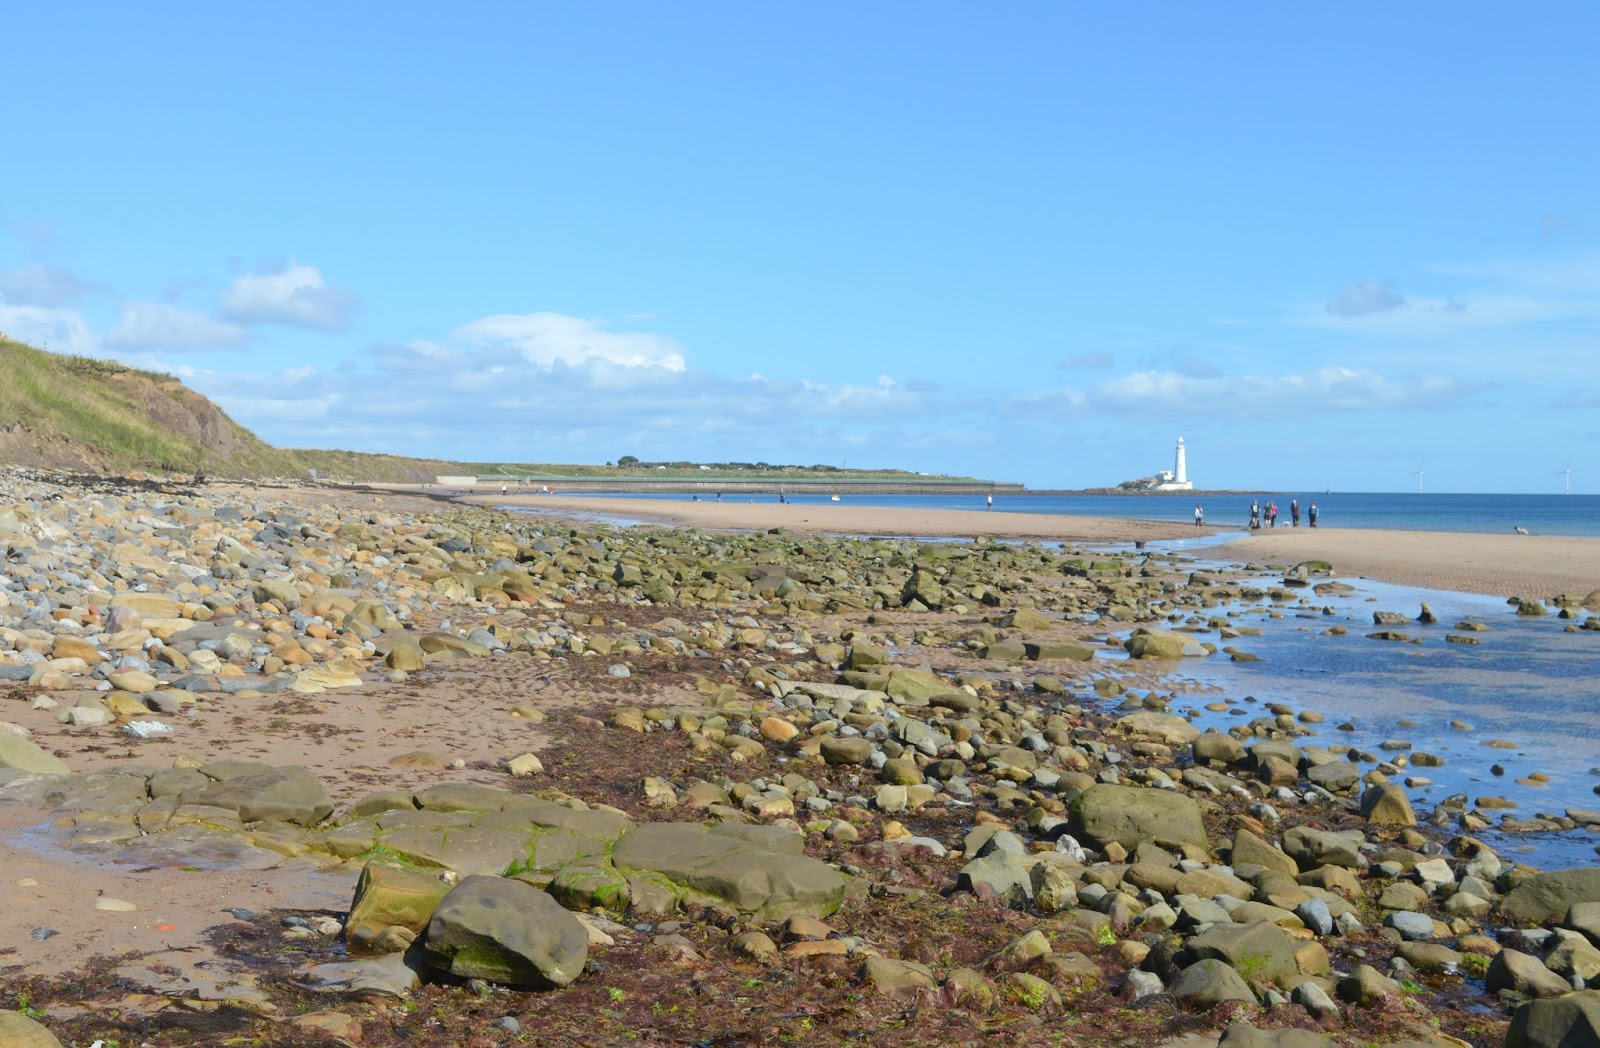 Whitley Bay Ultimate Seaside Destination - Rock Pools